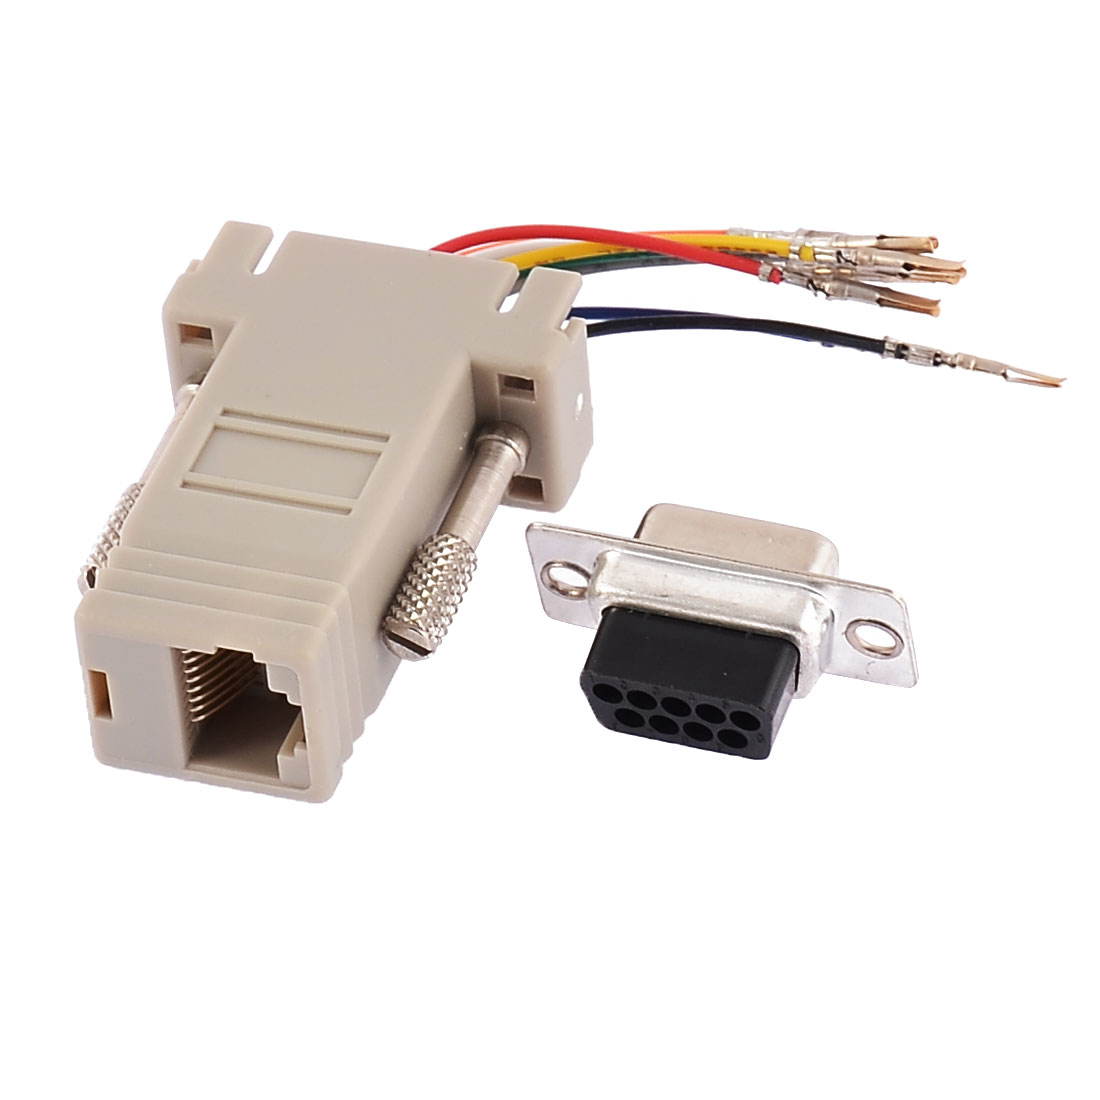 RS232 DB9 Male Connector to RJ45 Female Ethernet Adapter Gray